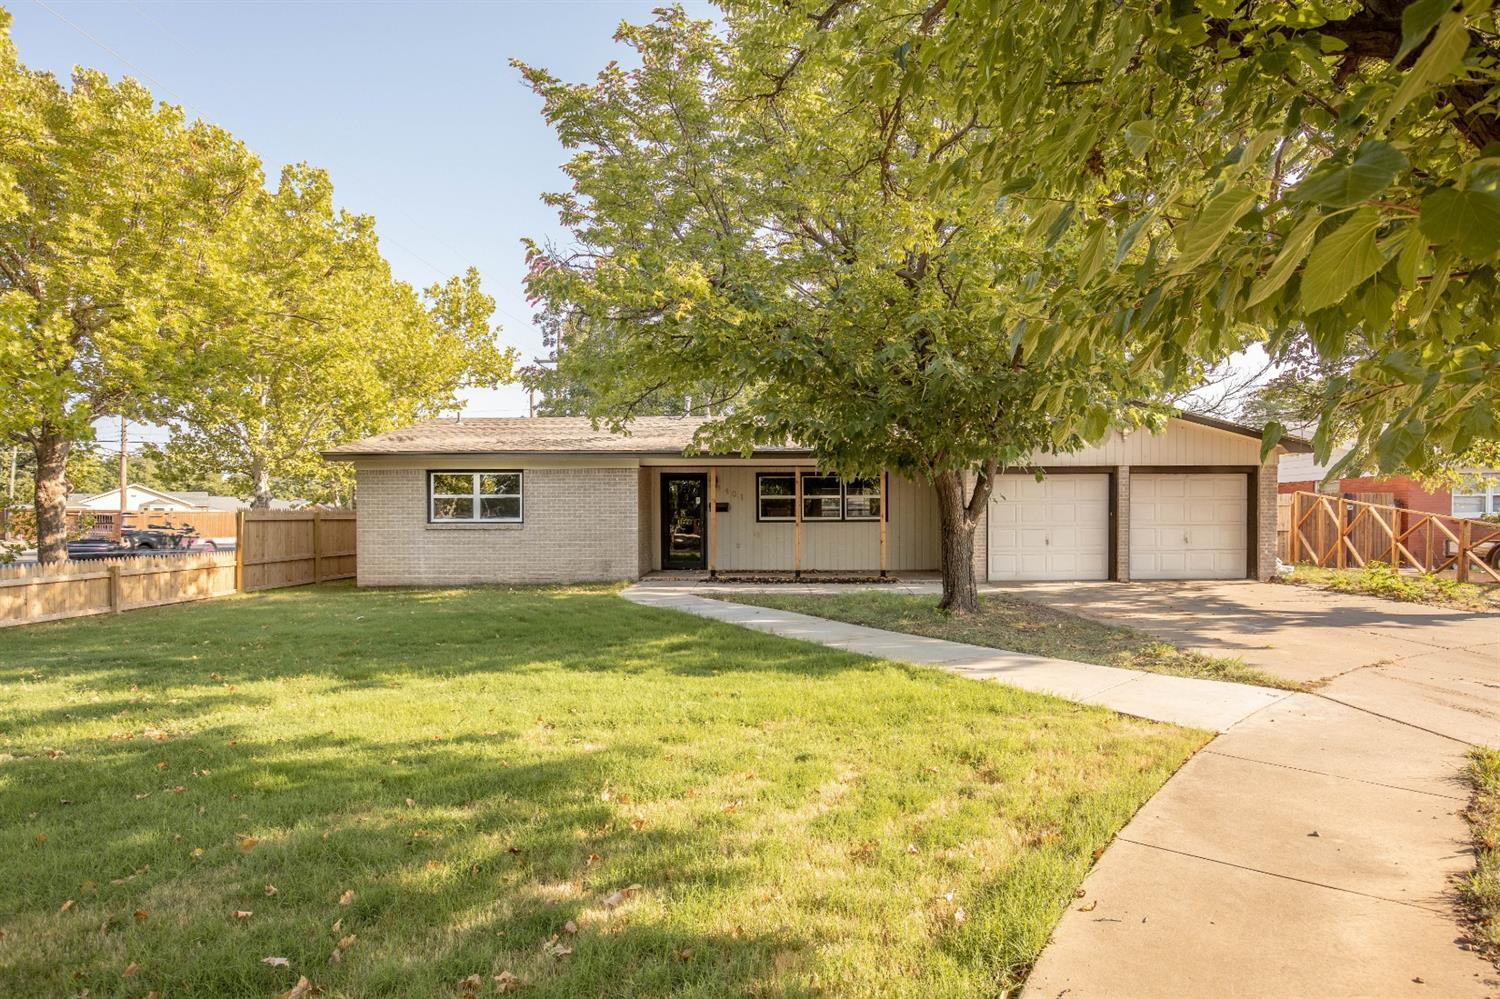 Completely updated! You will feel like you are walking into a new house in a beautifully mature neighborhood! 2 living areas open to the kitchen with a separate office area too! Call your favorite REALTOR today to see this one!